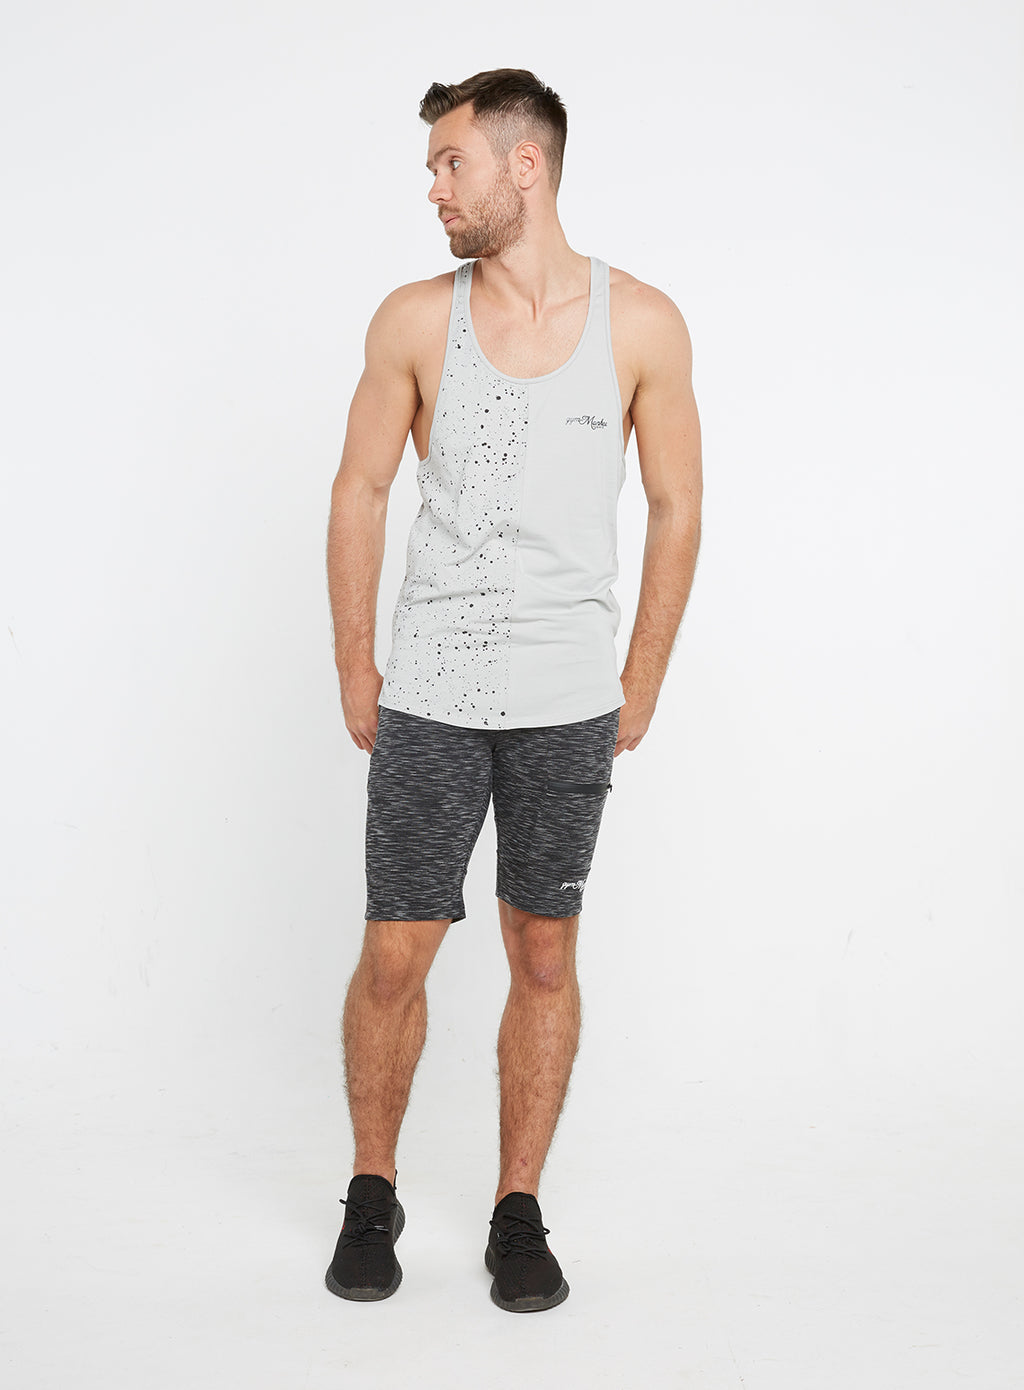 Gym Monkee - Grey Speckled Vest FRONT FULL